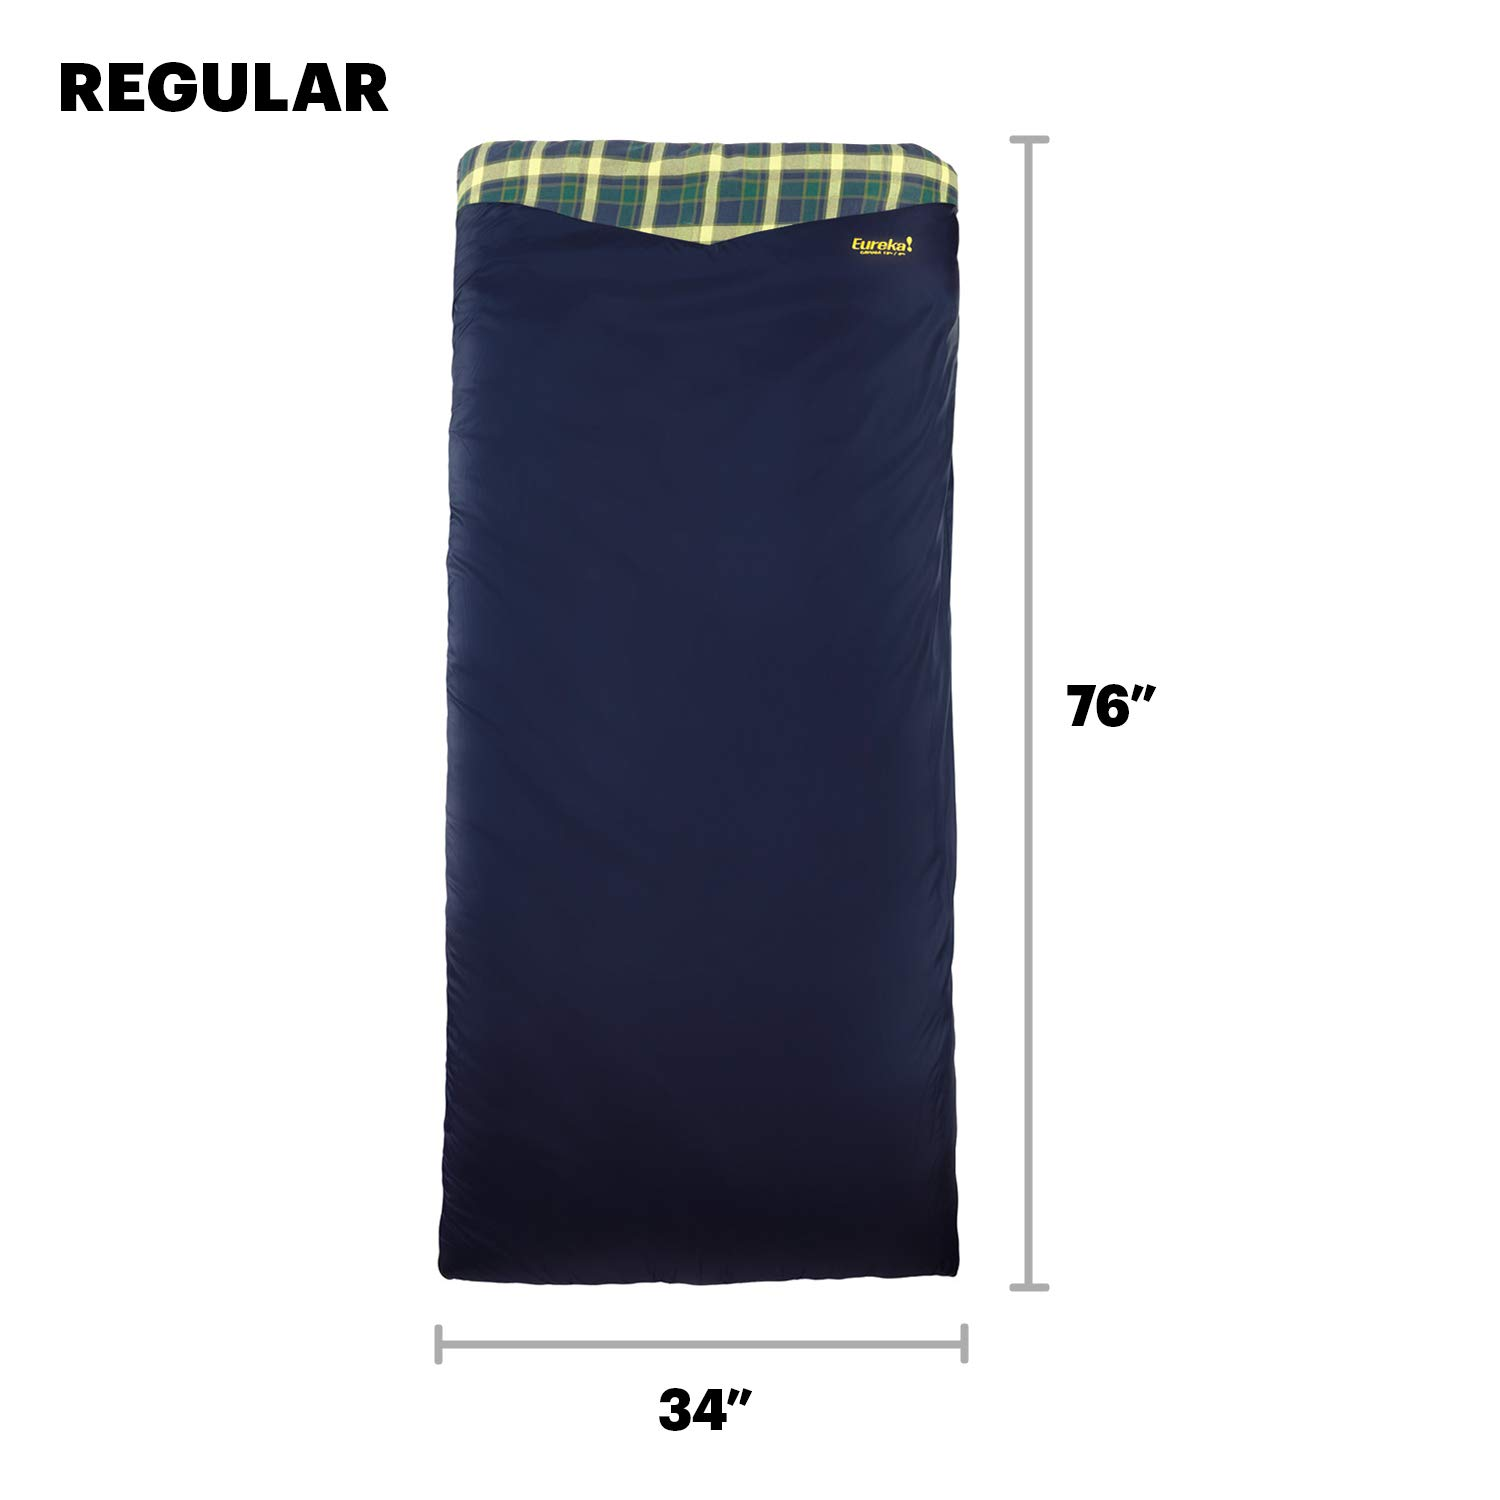 Eureka Johnson Outdoors Cayuga Flannel-Lined Sleeping Bag Right Zip Regular Size Blue 4 Pounds 2 Ounces US 2631191